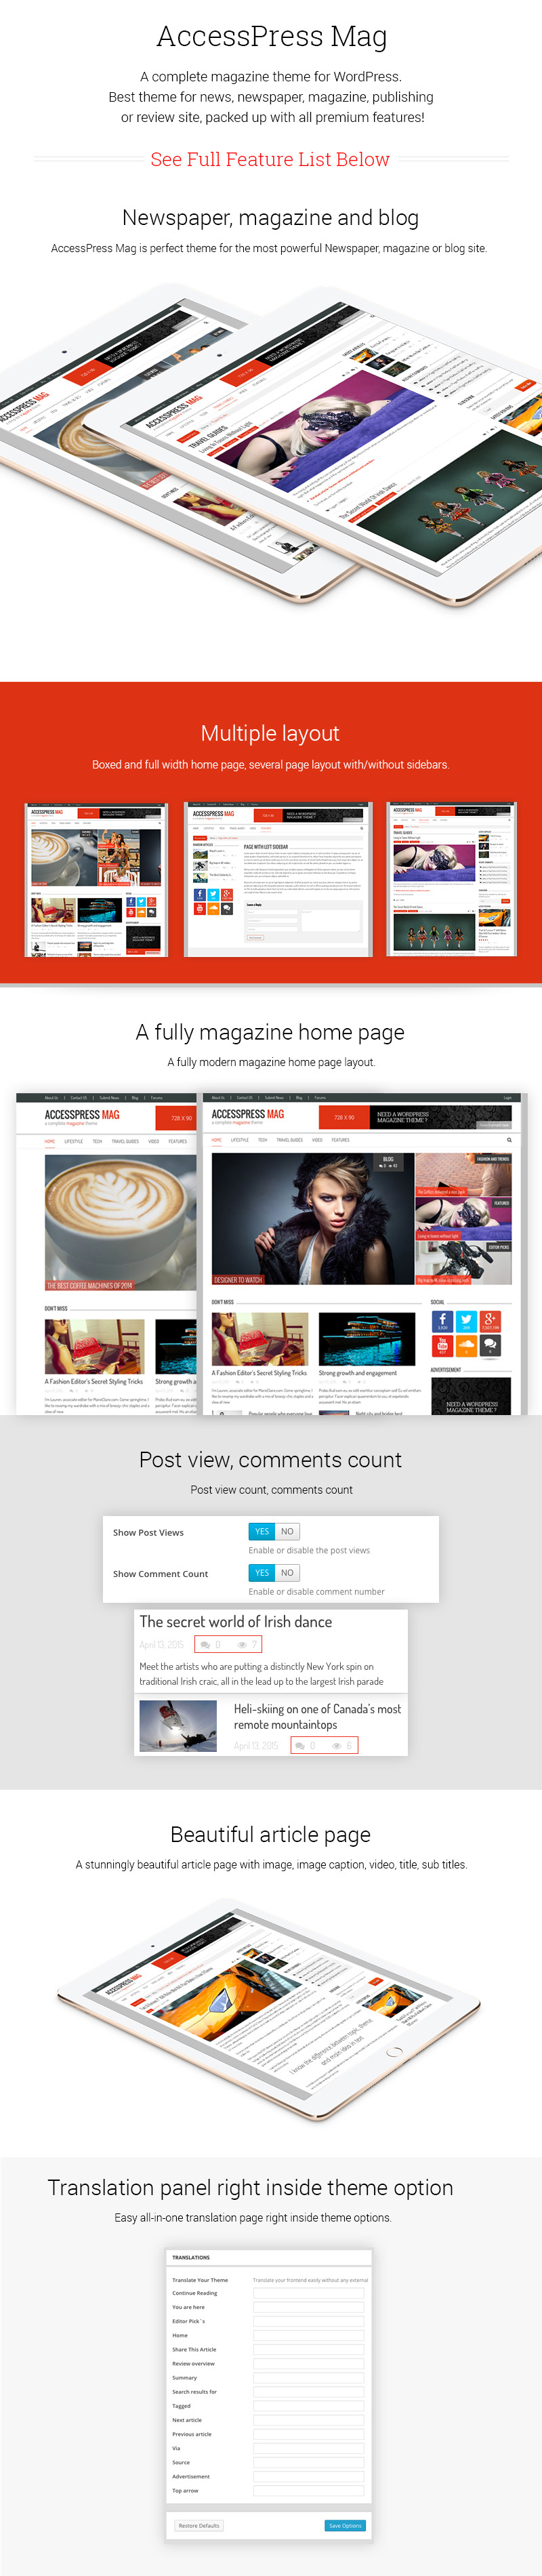 Best Free WordPress Magazine Theme – AccessPress Mag